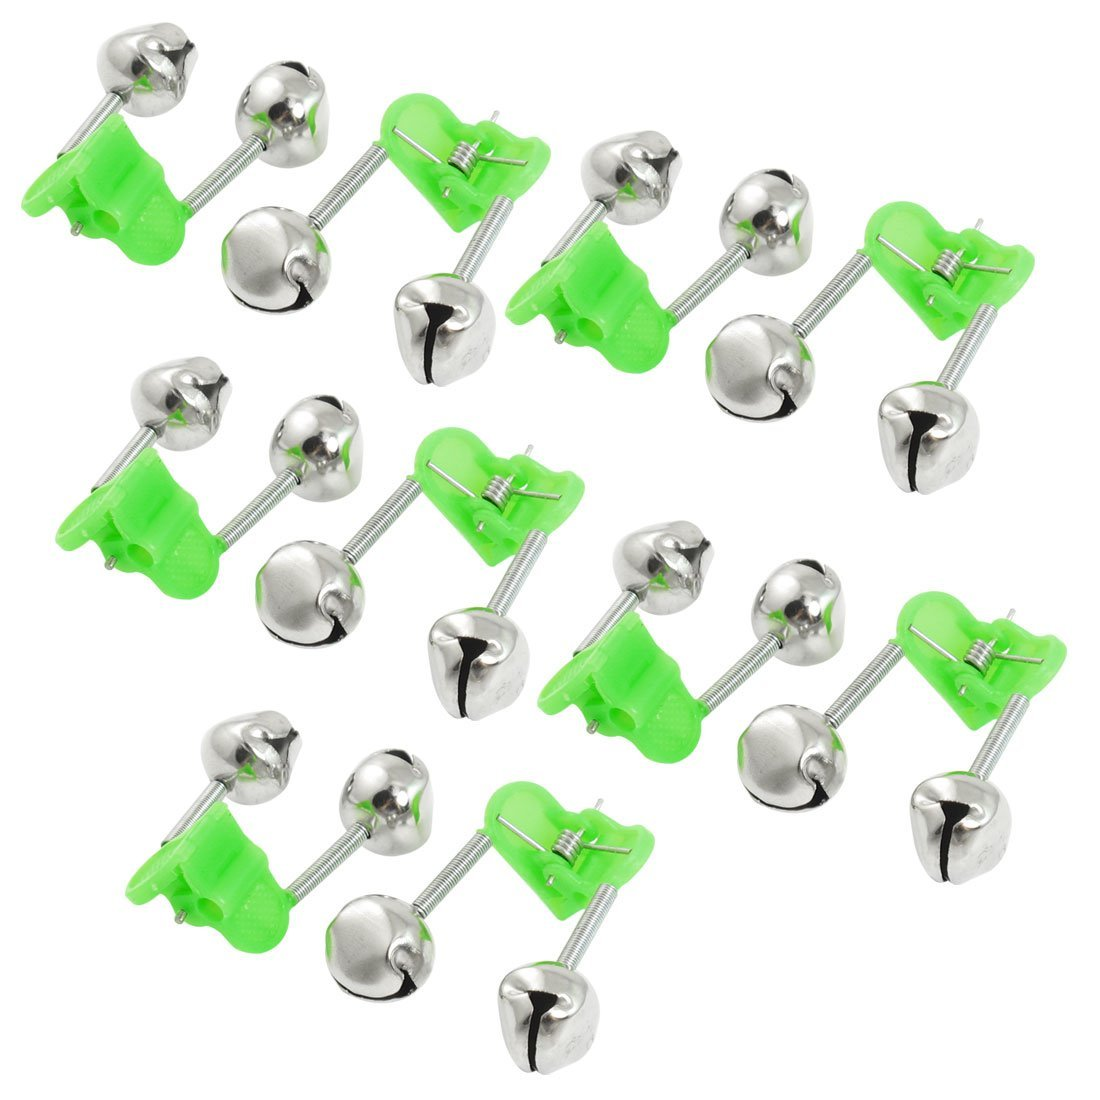 10 Pcs Green Spring Loaded Clip Double Fishing Rod Alarm Bells